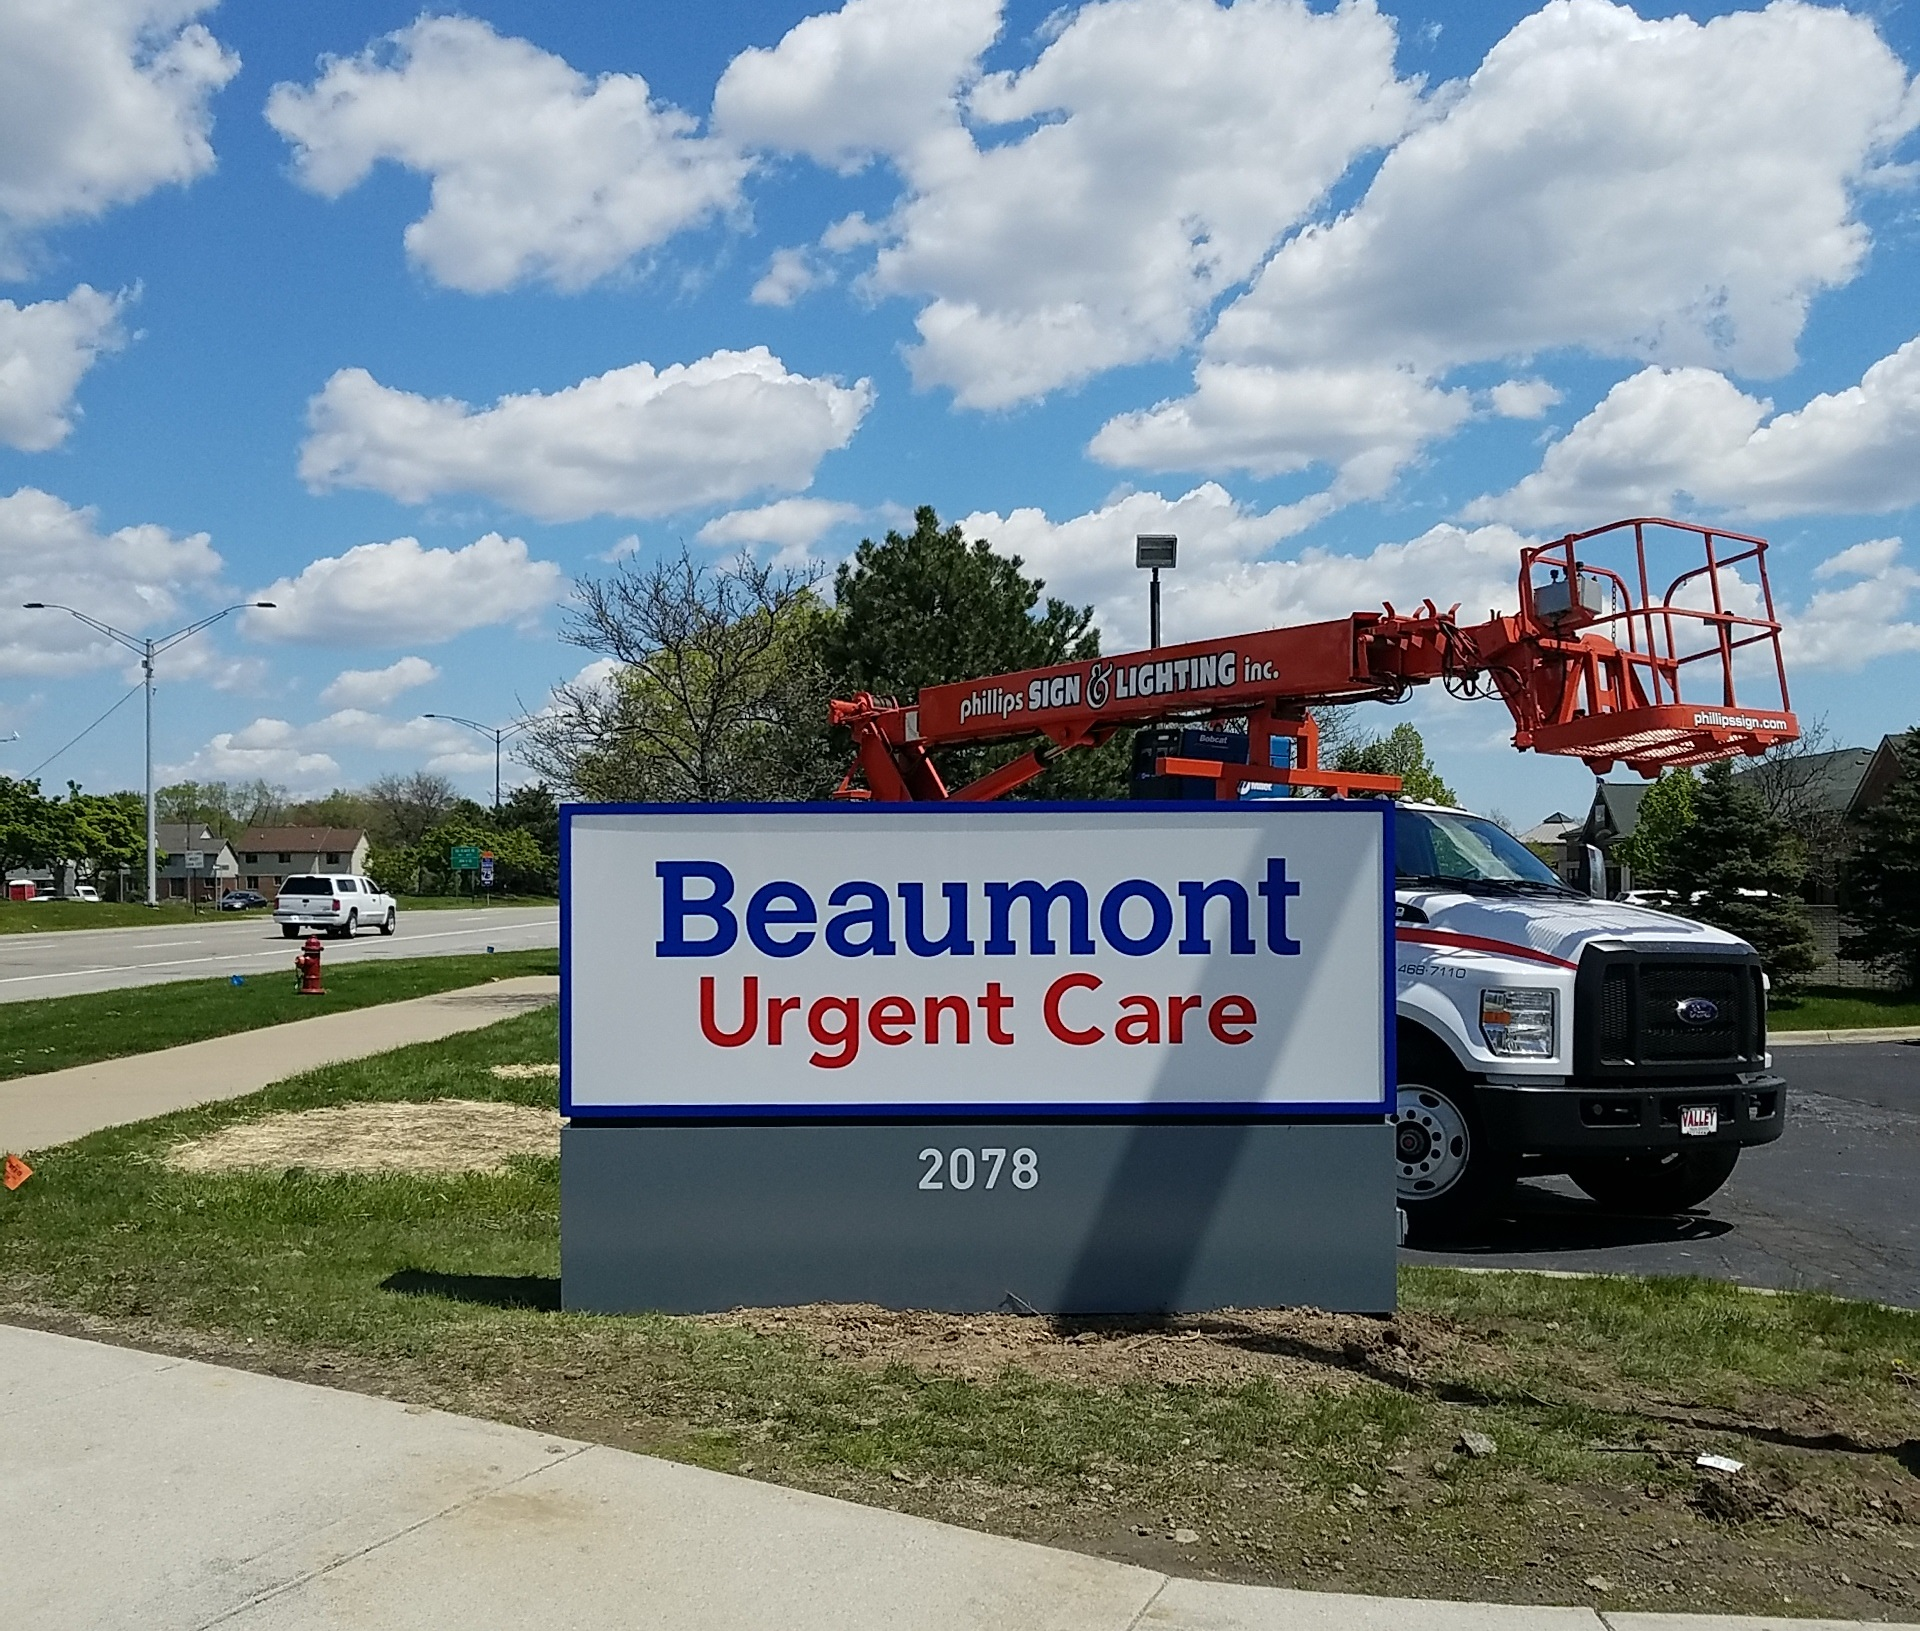 Beaumont Urgent Care - Monument Sign